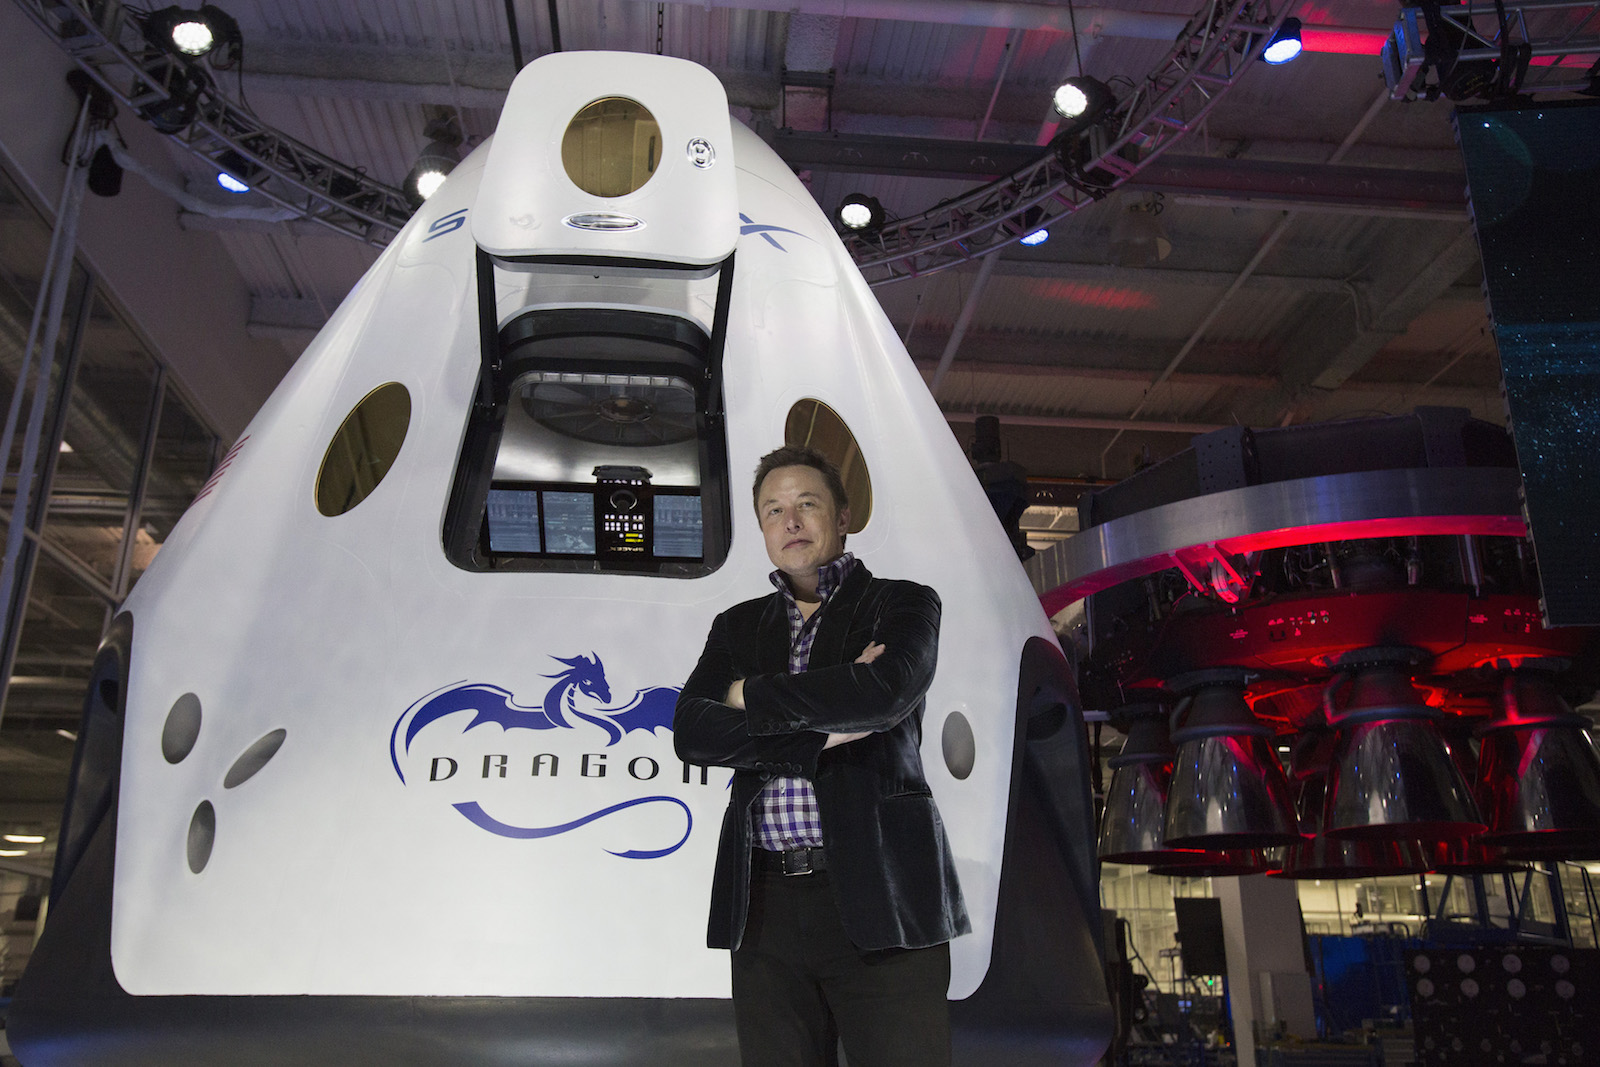 SpaceX CEO Elon Musk poses by the Dragon V2 spacecraft after it was unveiled in Hawthorne, California May 29, 2014. Space Exploration Technologies, or SpaceX, on Thursday unveiled an upgraded passenger version of the Dragon cargo ship NASA buys for resupply runs to the International Space Station.